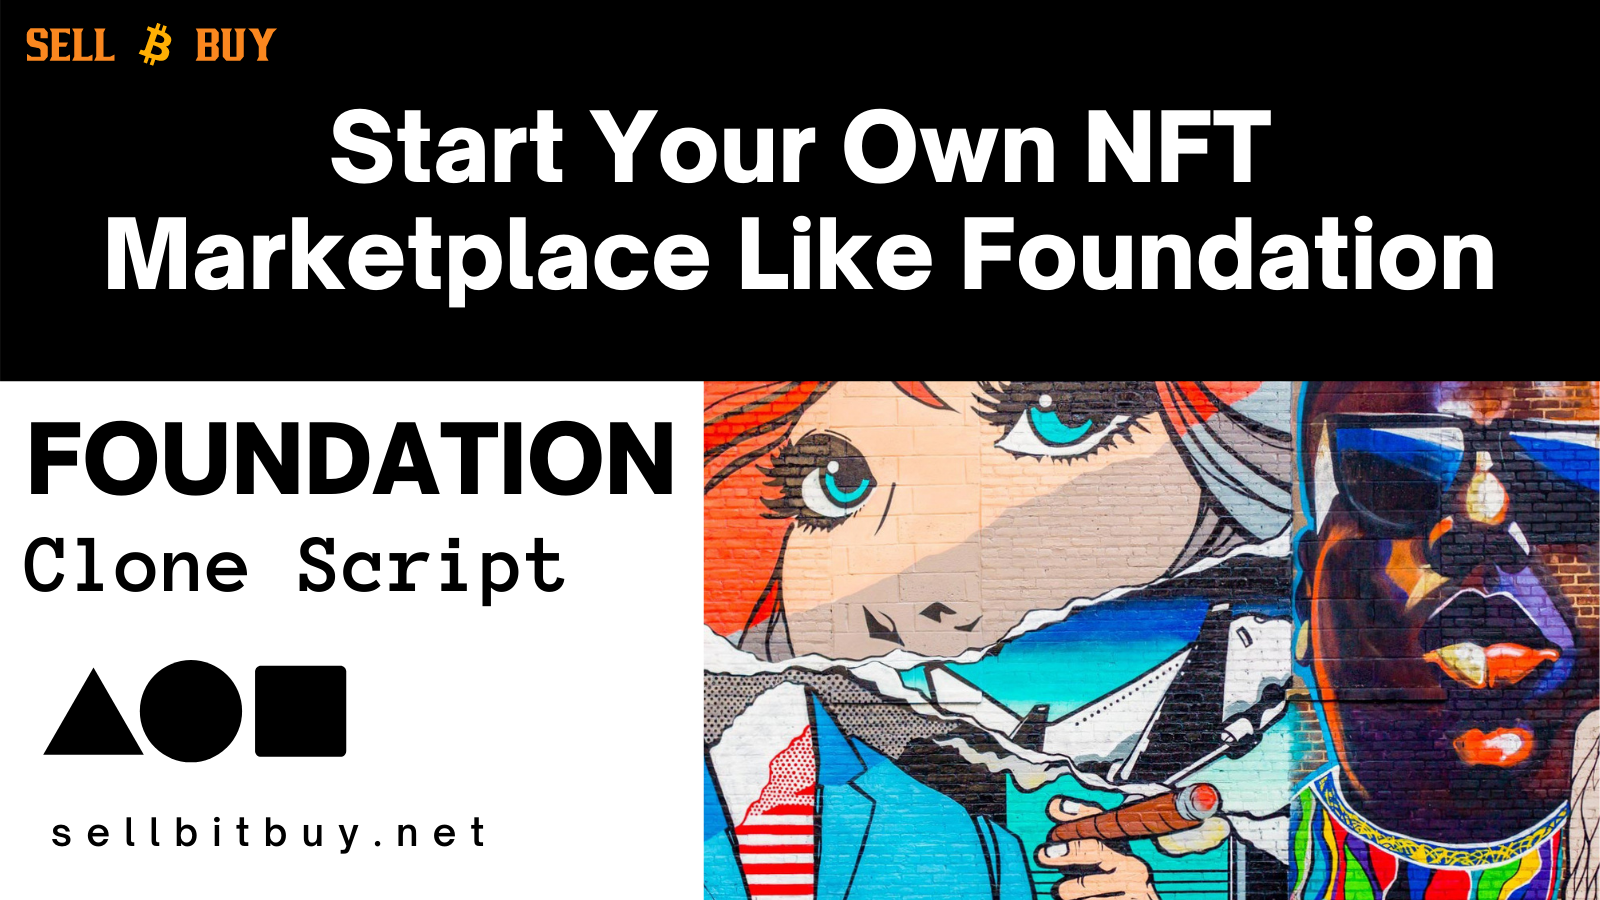 Foundation Clone Script - Start Your Own NFT Marketplace Like Foundation